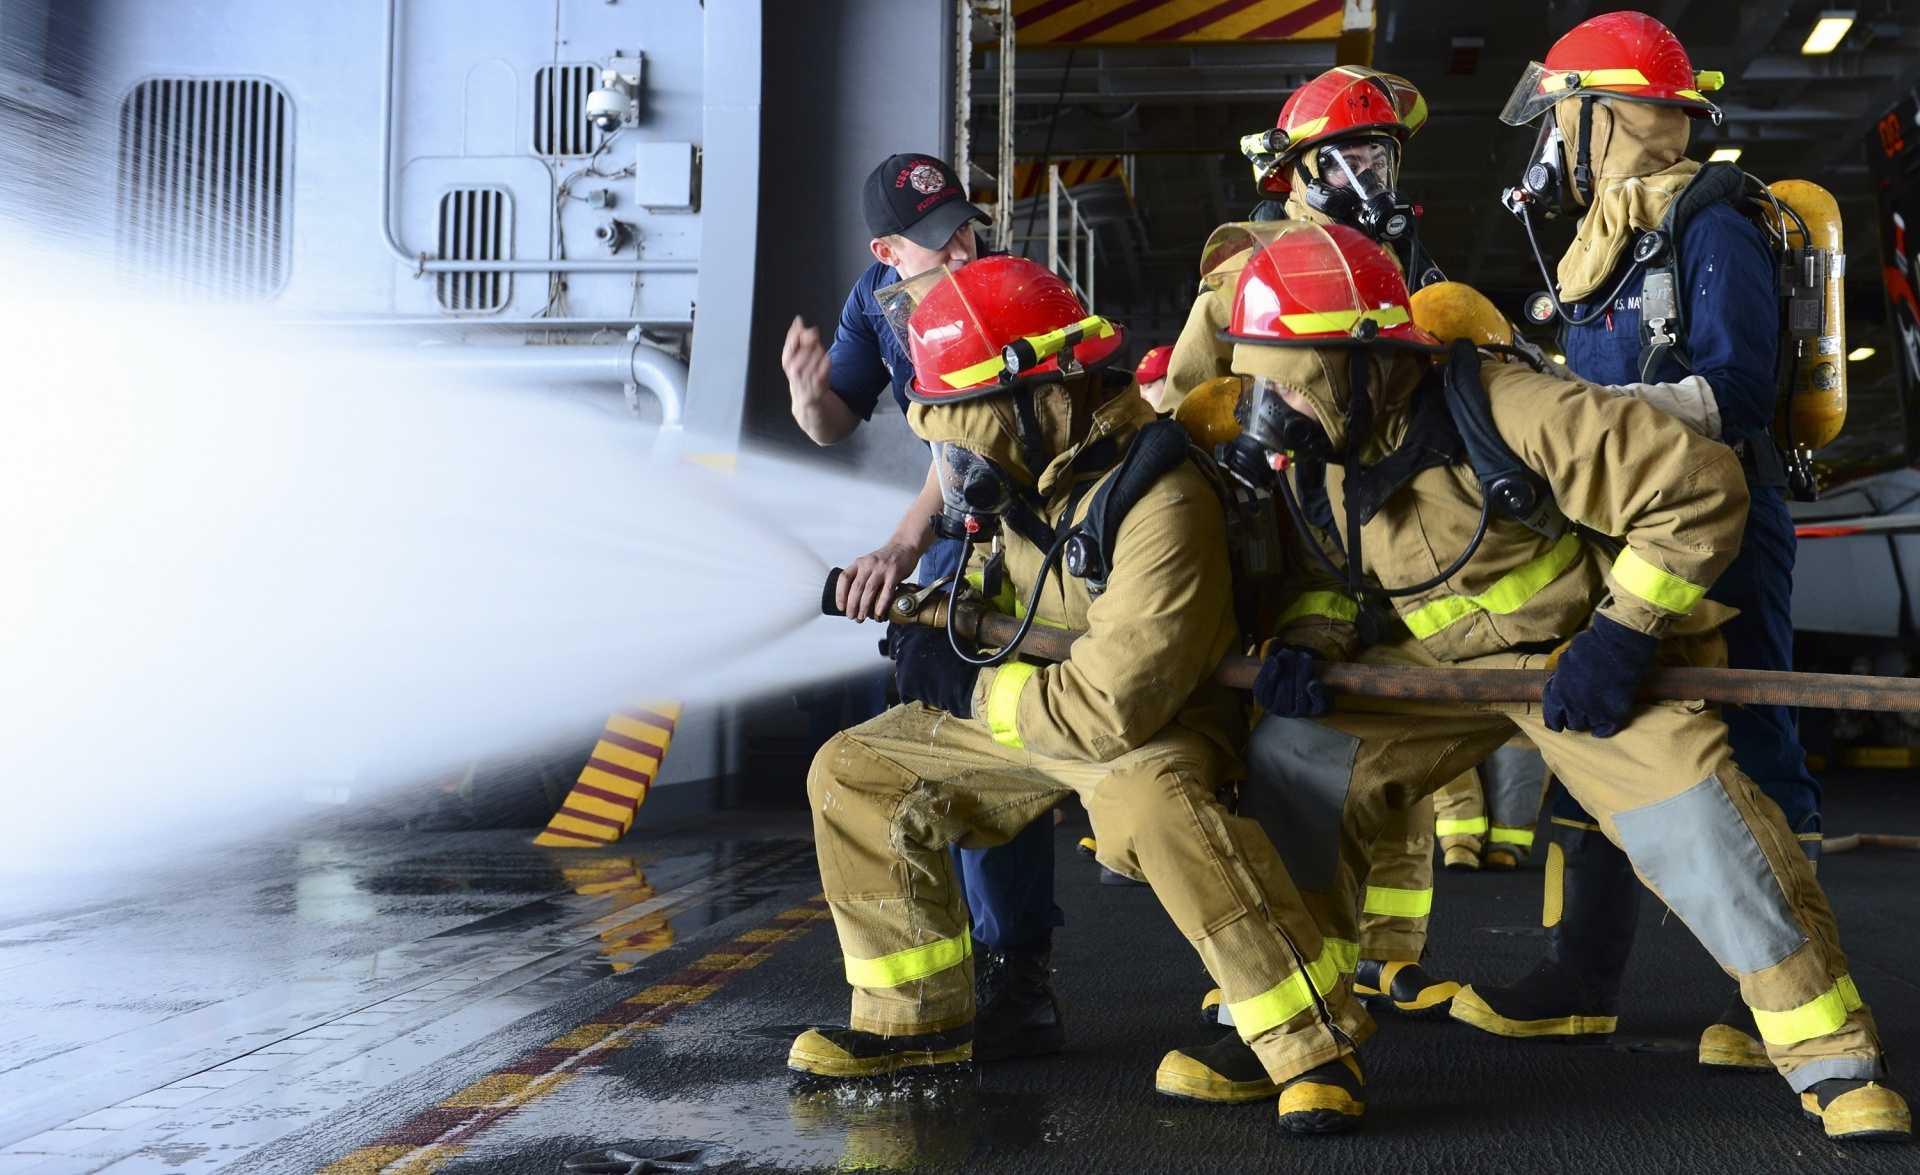 Four US Navy firefighters handling a full pressure firehose as an instructor directs them.